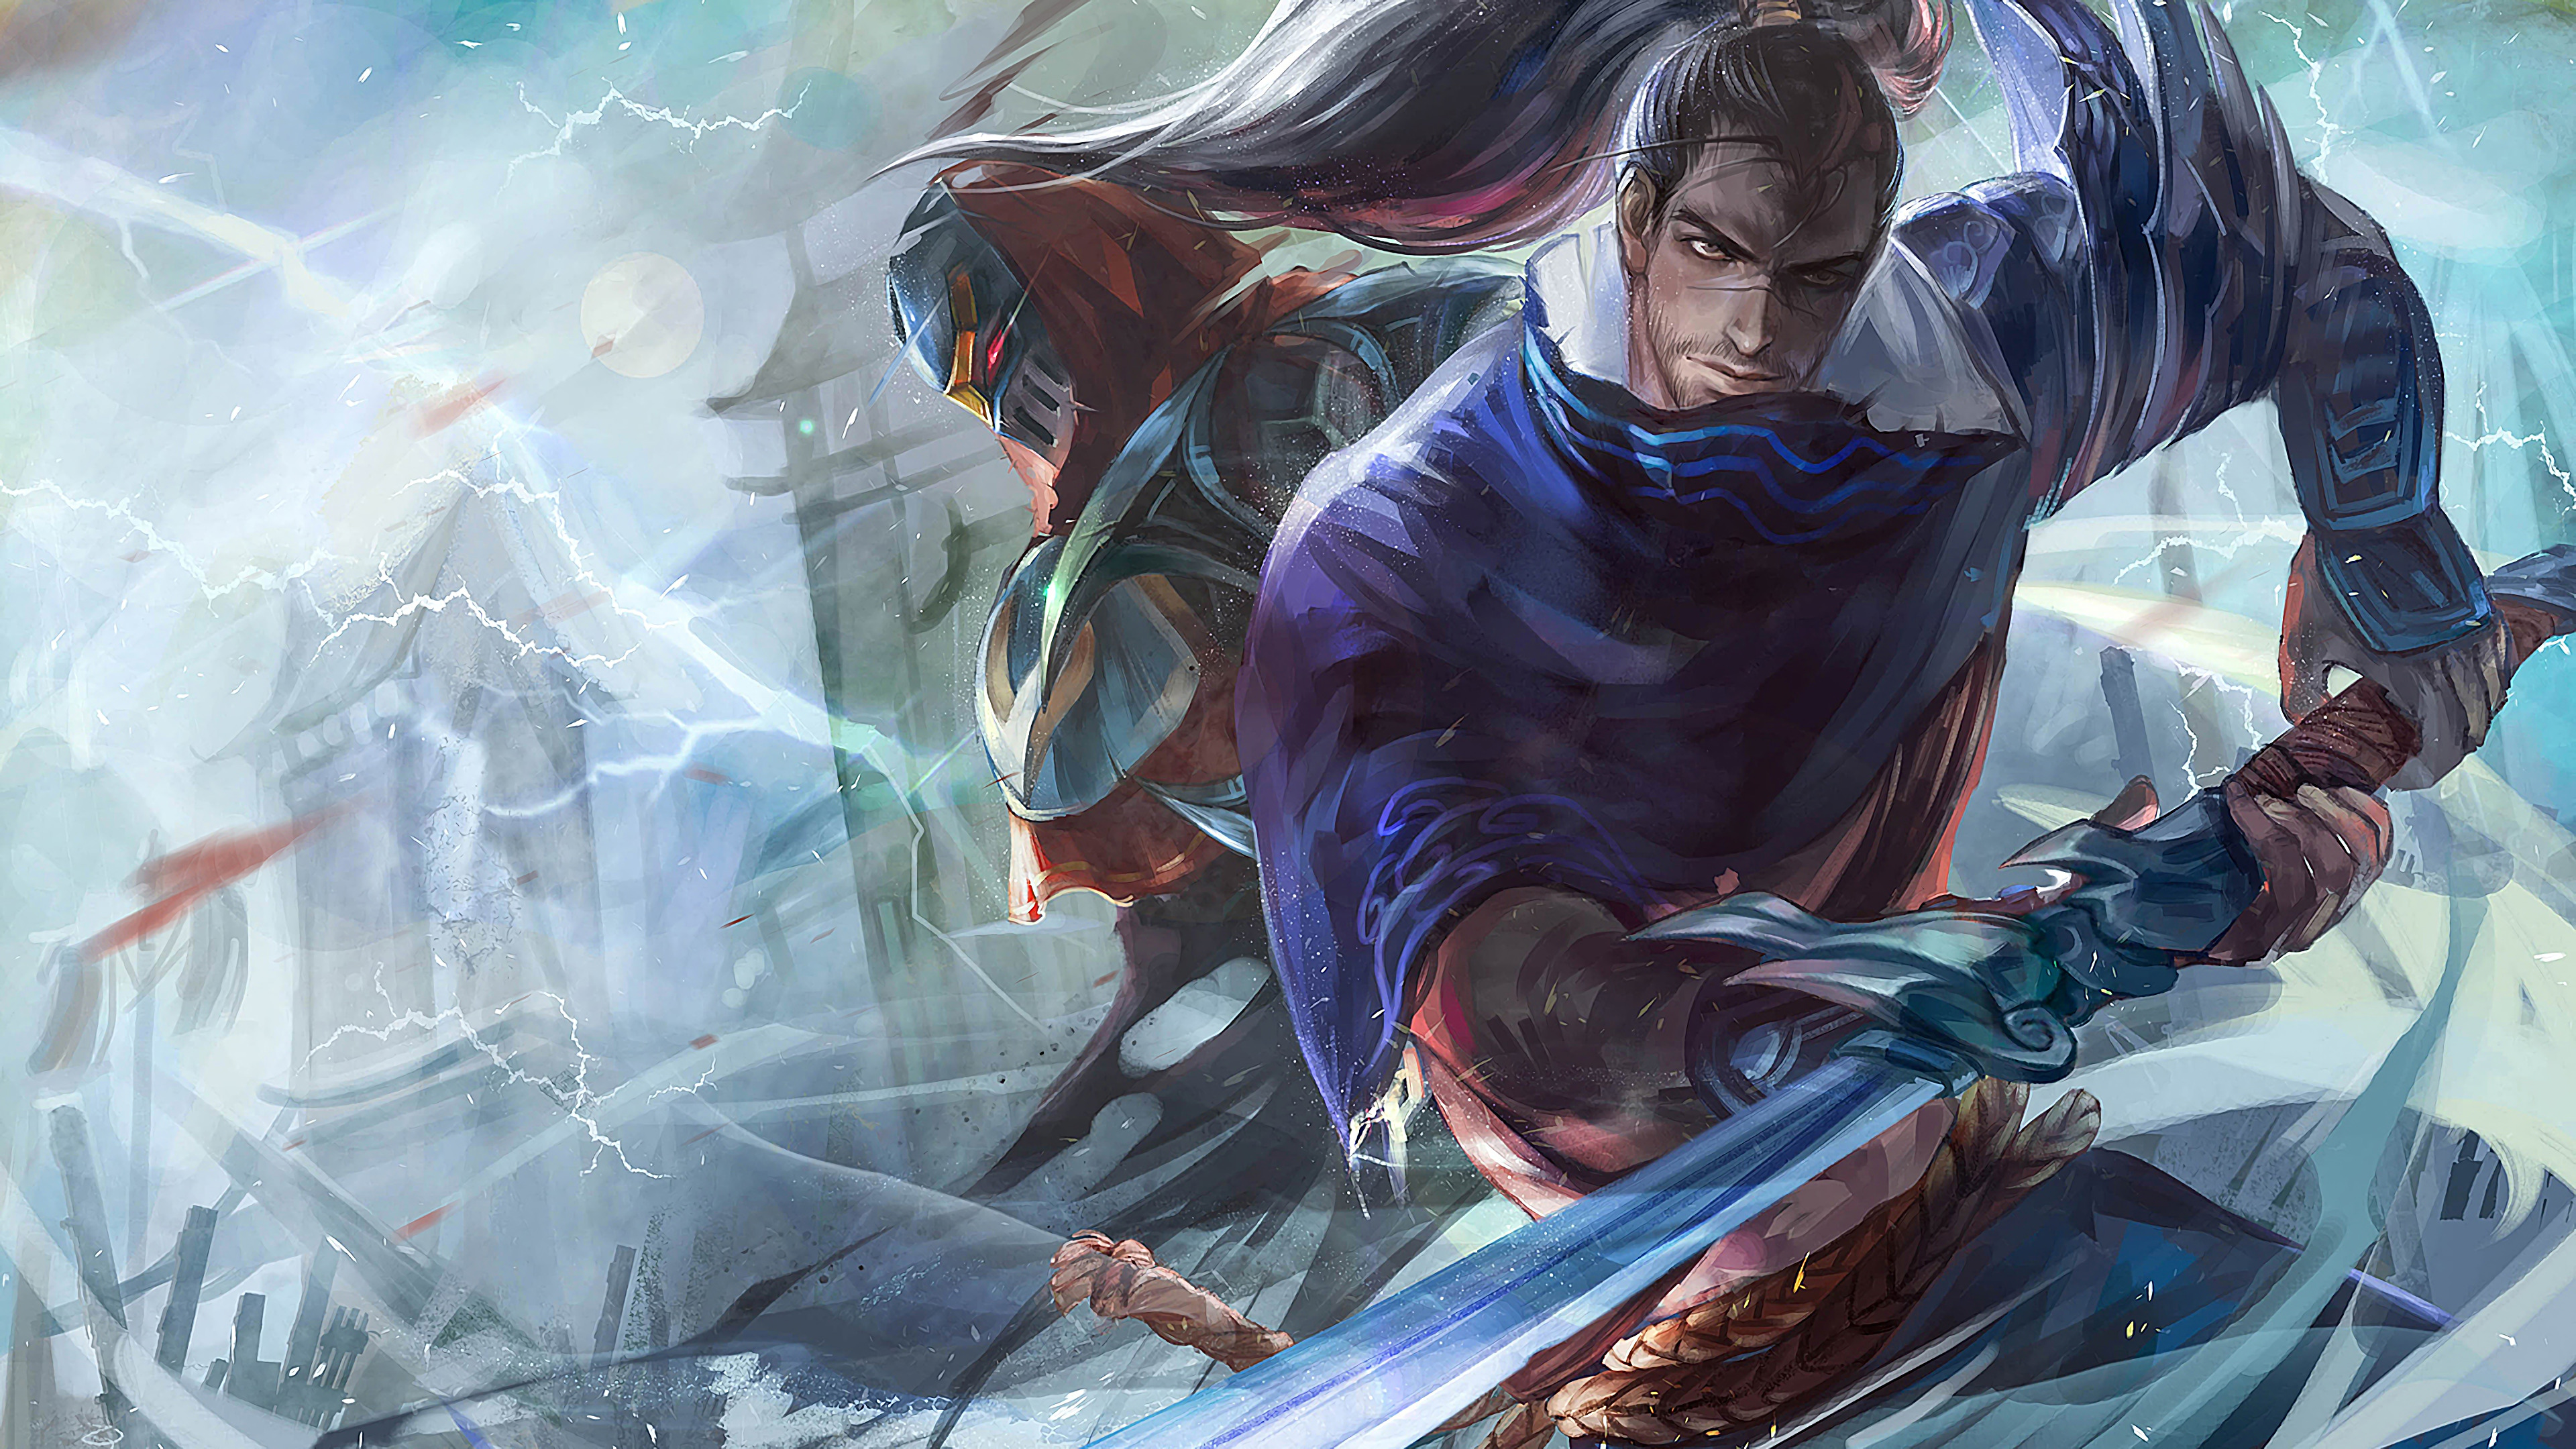 yasuo and zed league of legends 1574095940 - Yasuo And Zed League Of Legends - Zed, Yasuo, league of legends